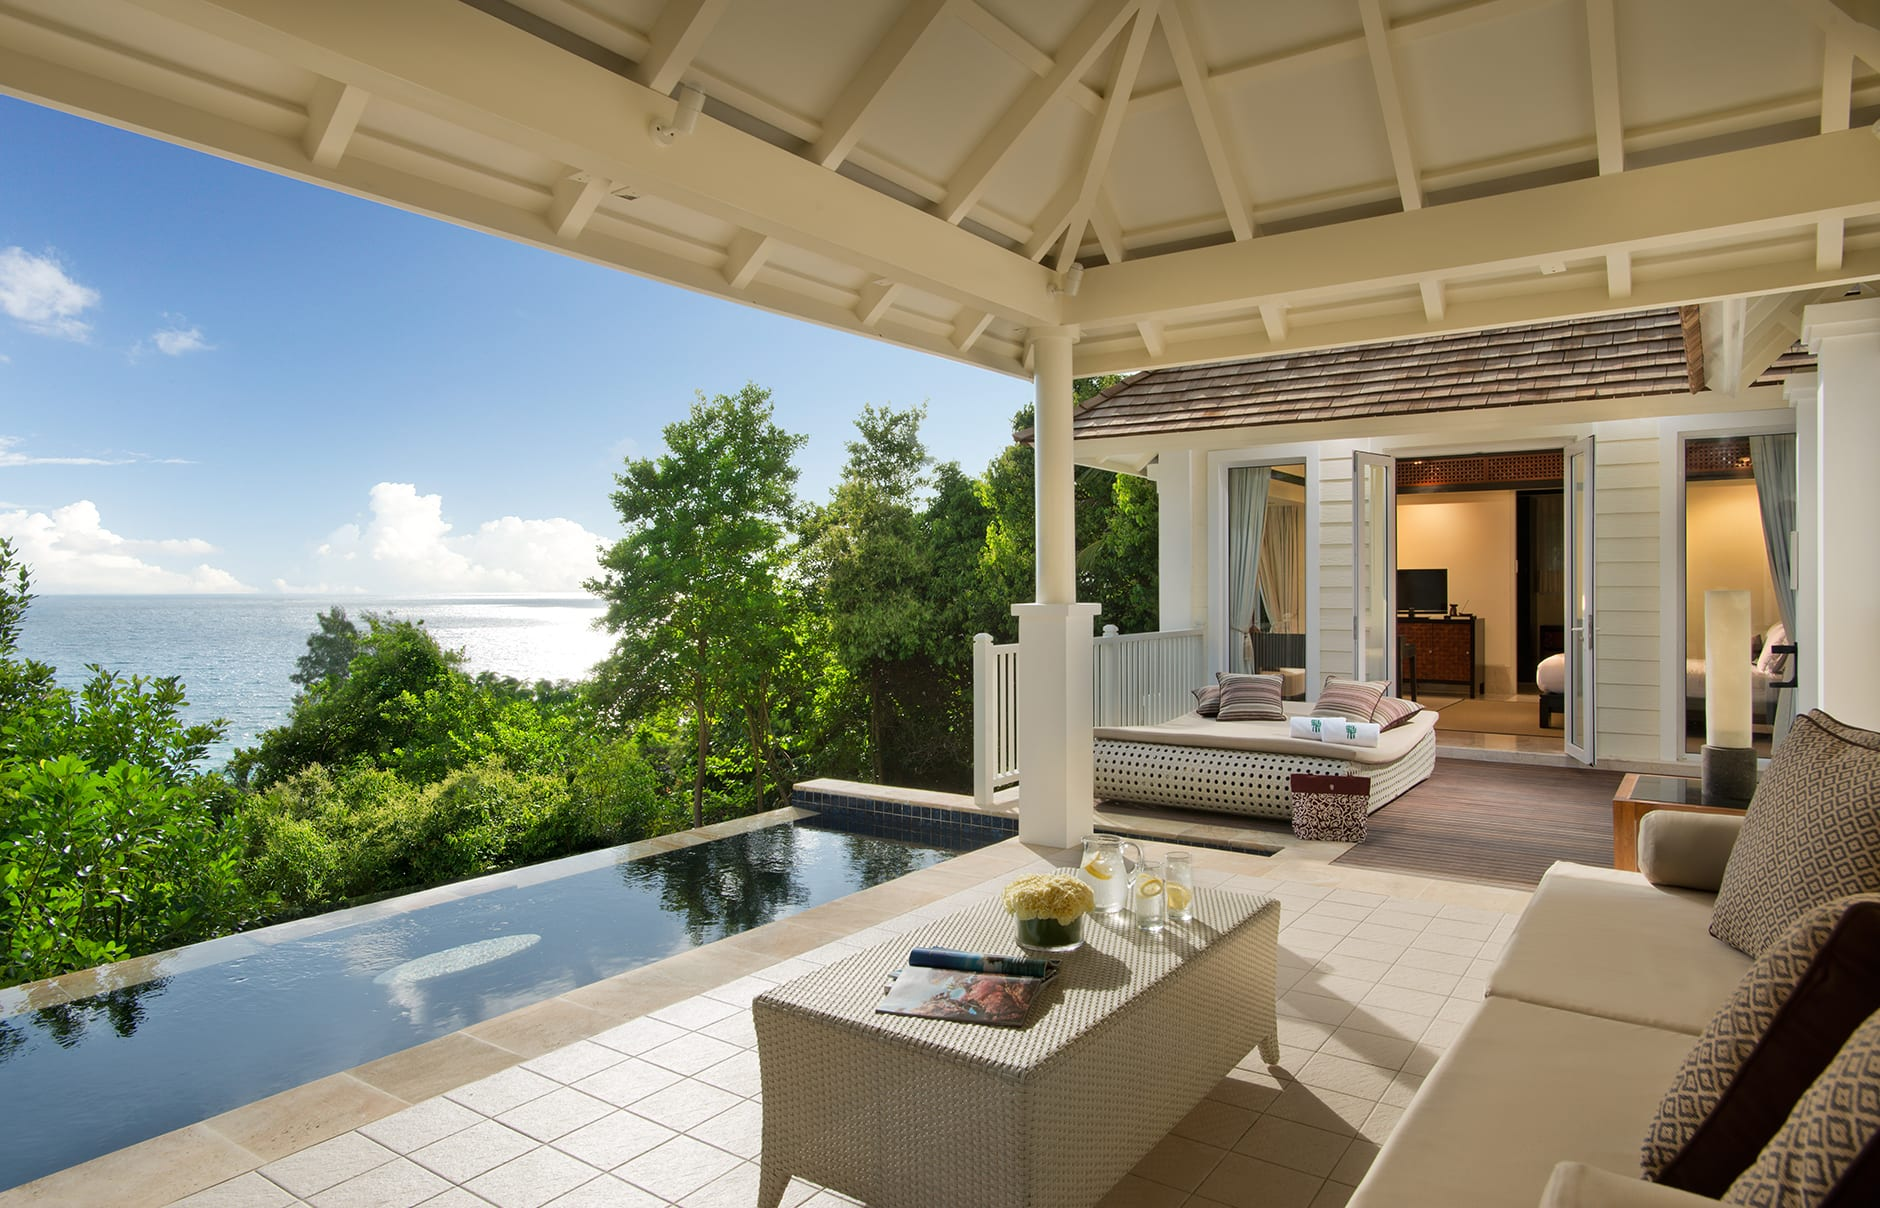 Banyan Tree Seychelles. Luxury Hotel Review by TravelPlusStyle. Photo © Banyan Tree Hotels & Resorts